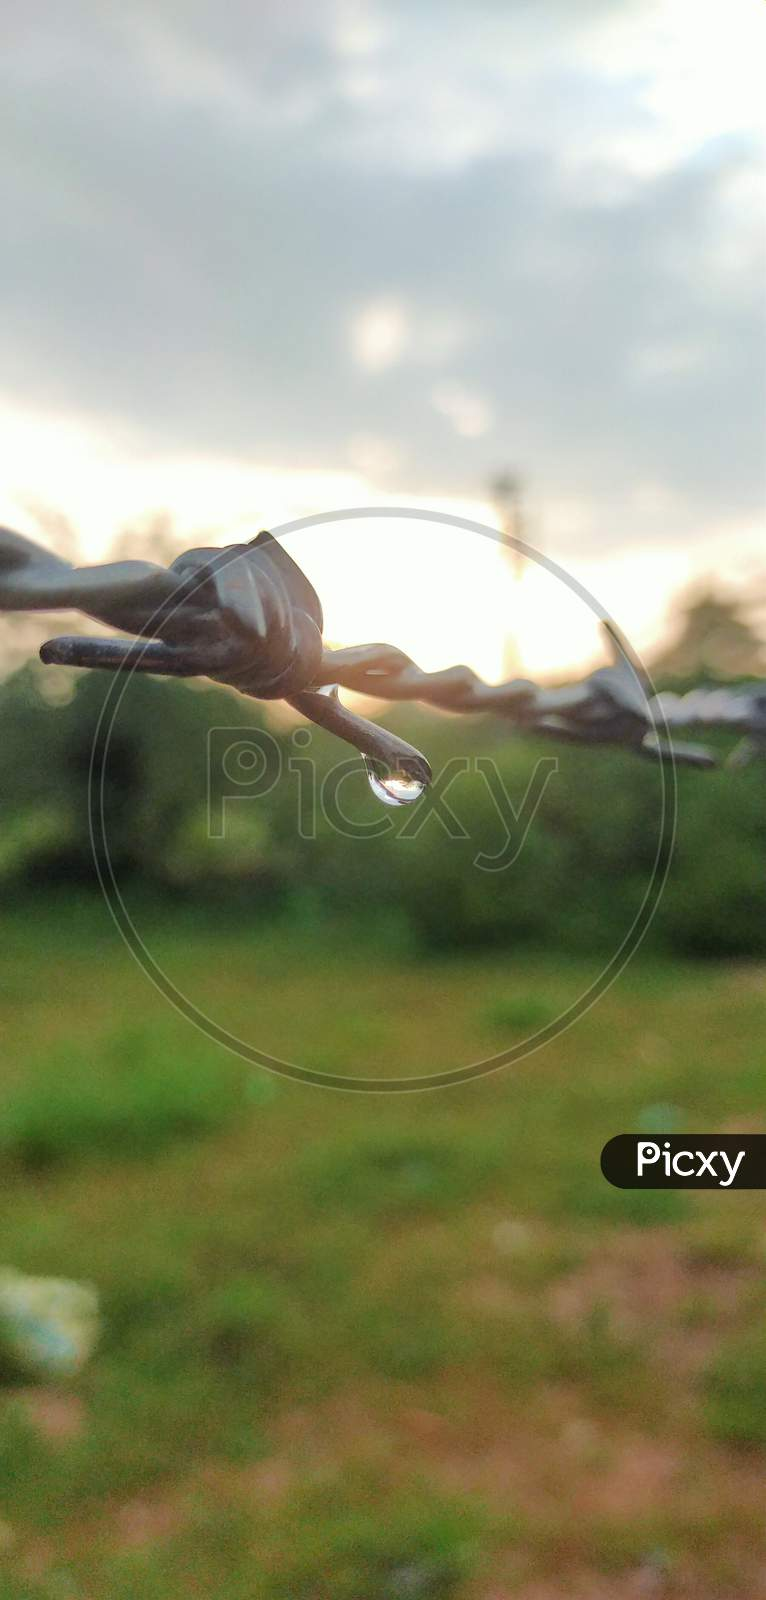 The last hanging drop of water